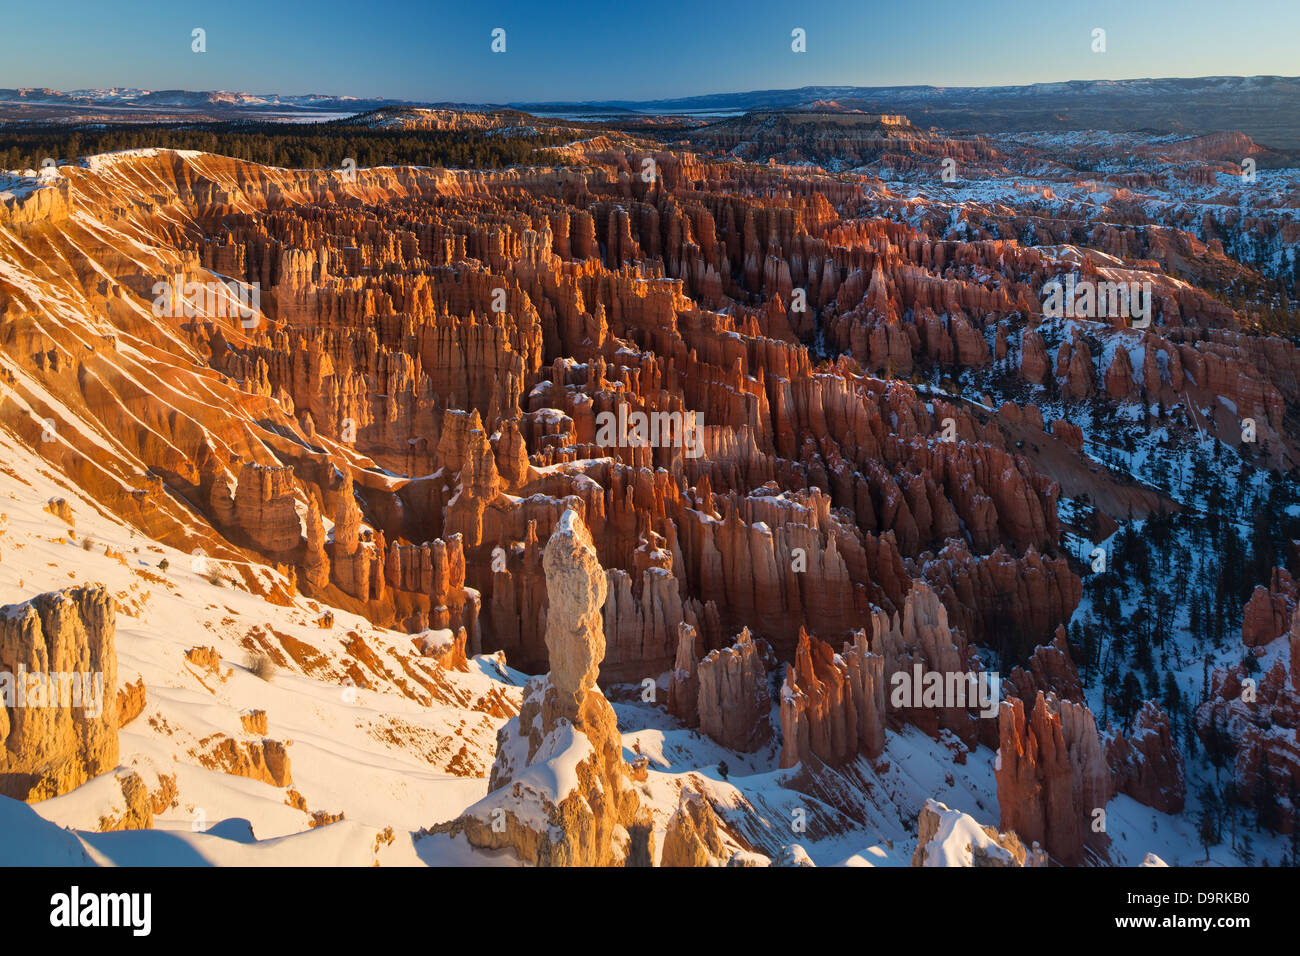 the hoodoos in the Amphitheatre of Bryce Canyon at dawn, Utah, USA Stock Photo